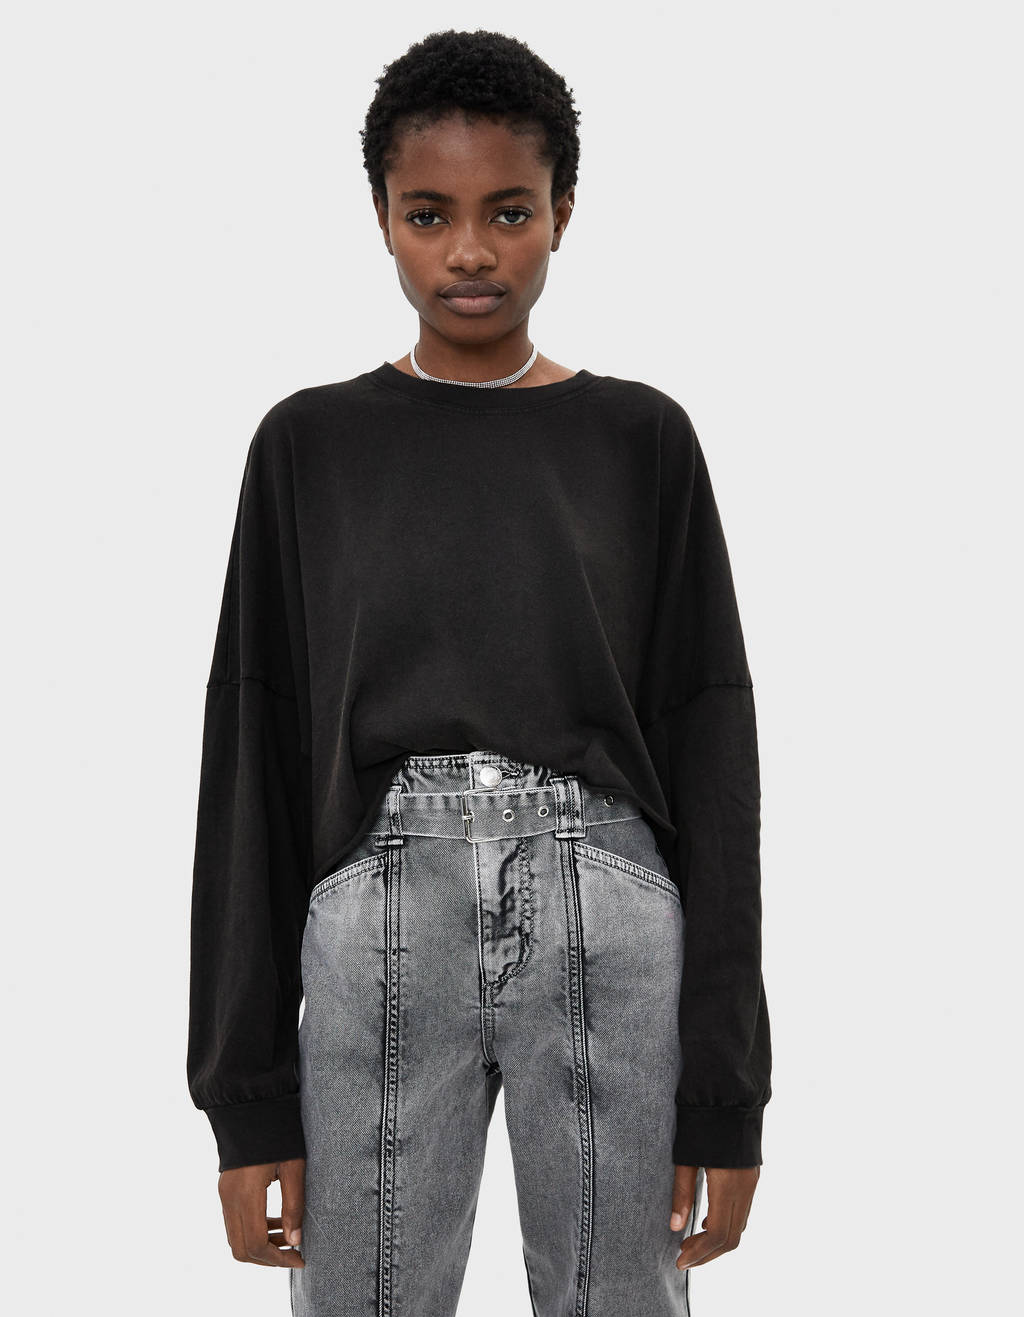 Puff sleeve cropped sweater